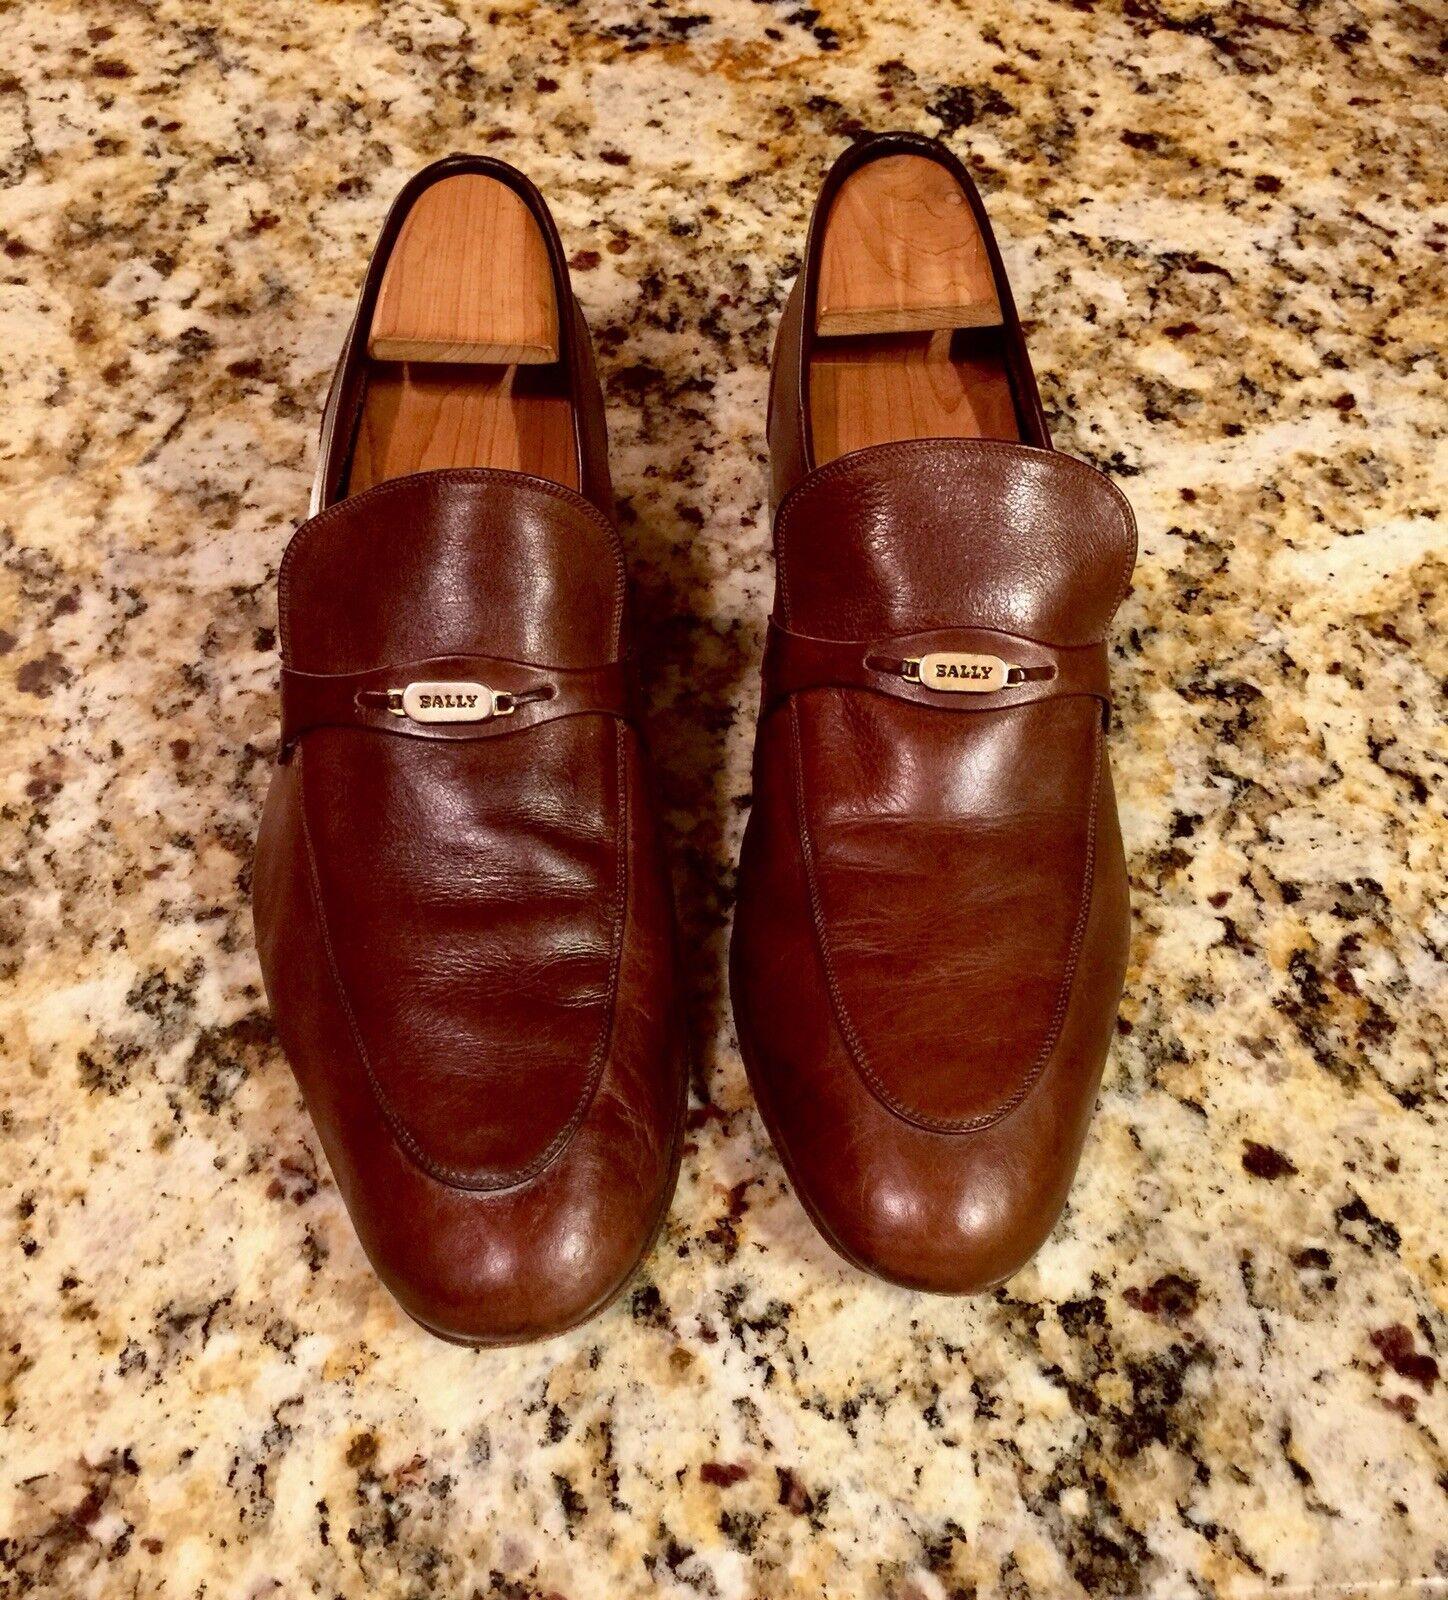 Bally Slip-On Uomo Shoes 9.5 Brown Bit Loafers